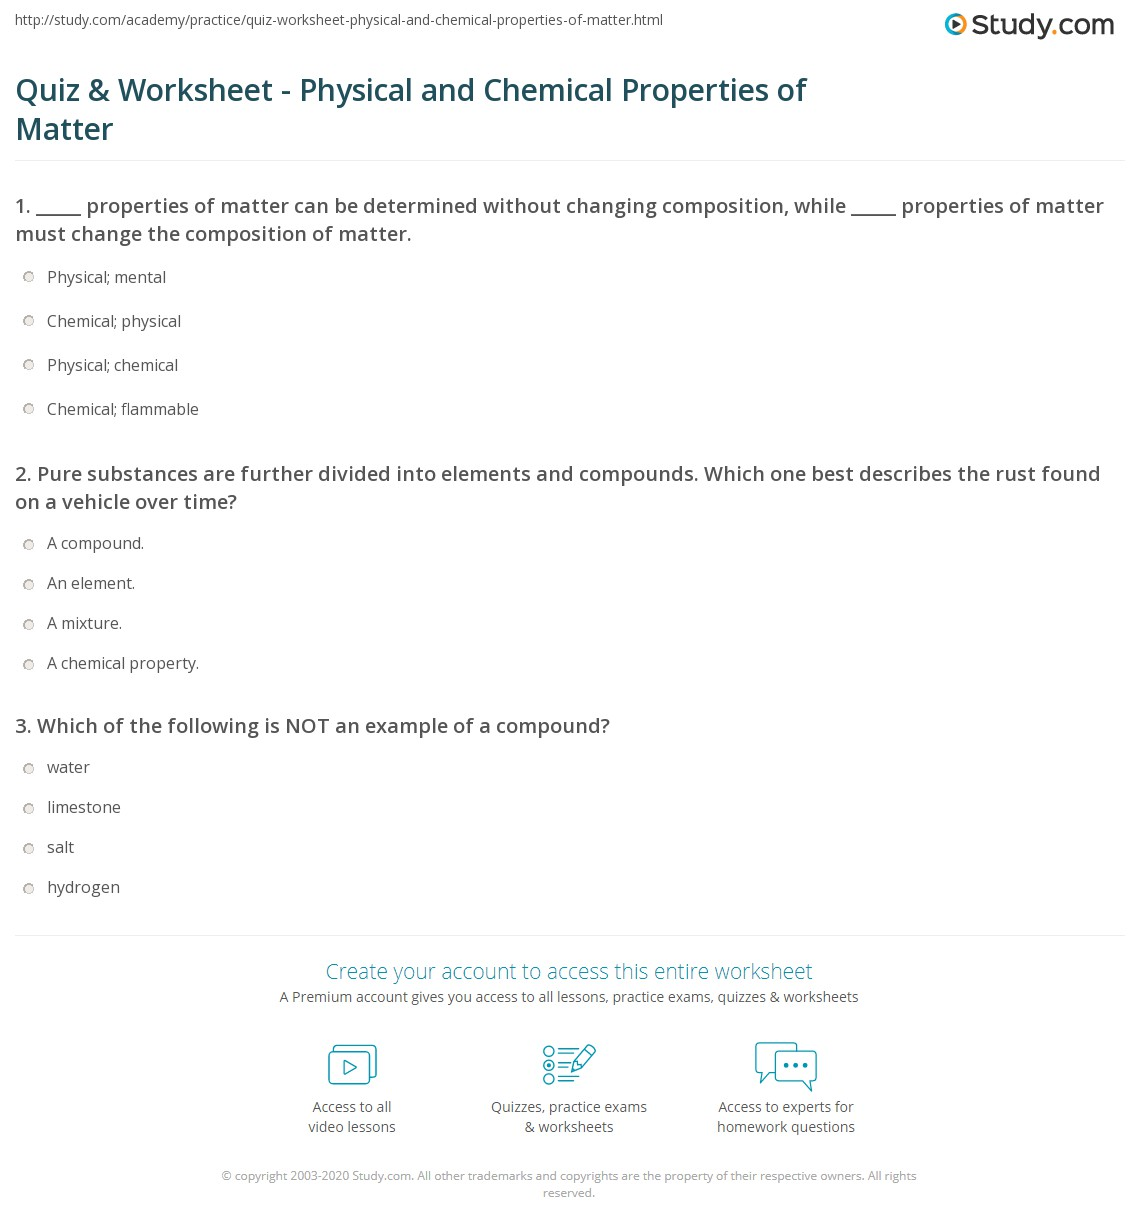 Quiz Worksheet Physical and Chemical Properties of Matter – Physical and Chemical Properties Worksheet Answers